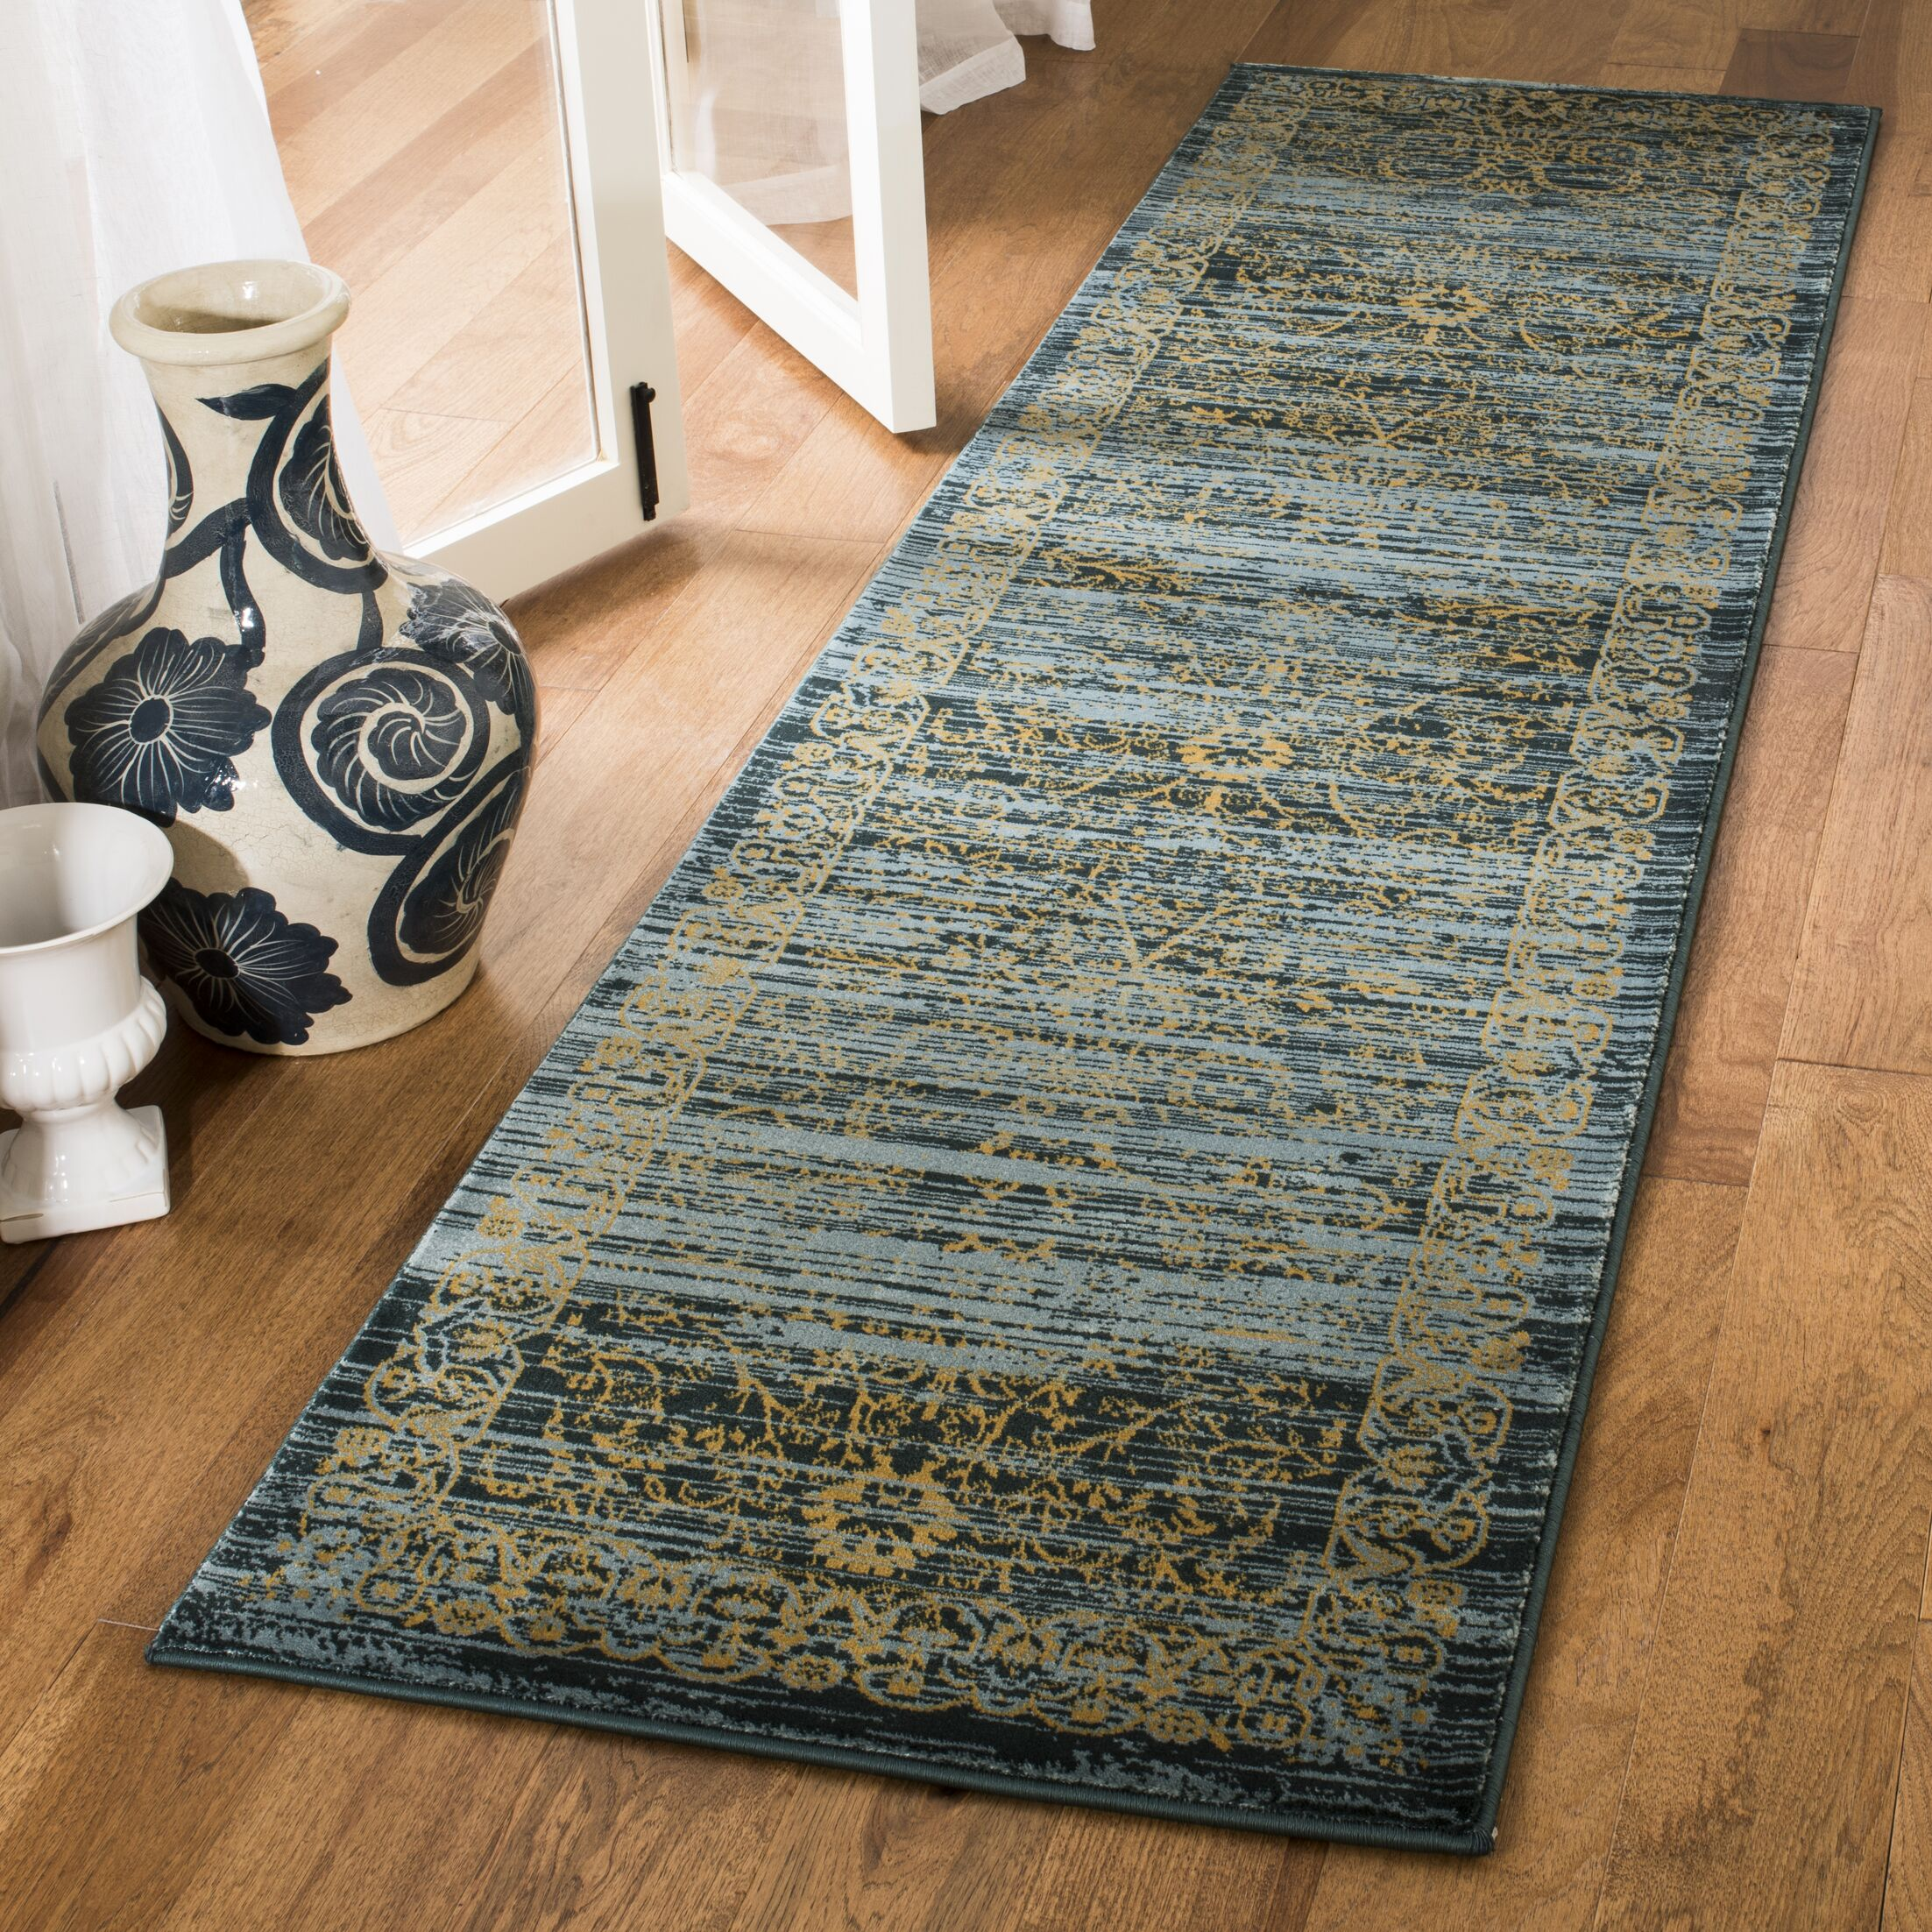 Zennia Turquoise & Gold Area Rug Rug Size: Runner 2'3